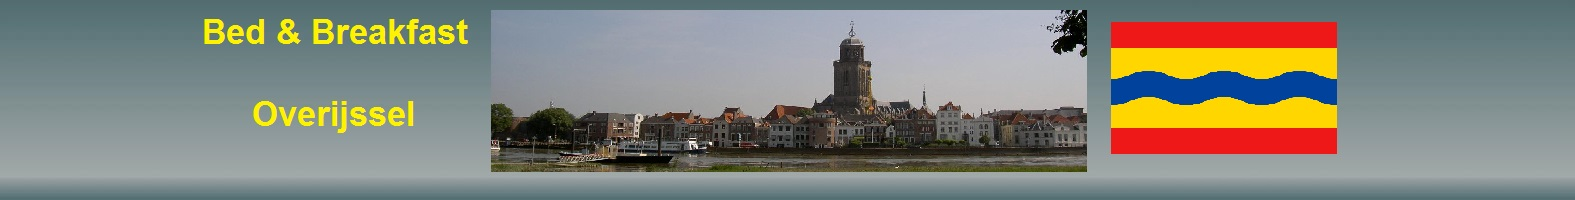 wrapper bed & breakfast overijssel